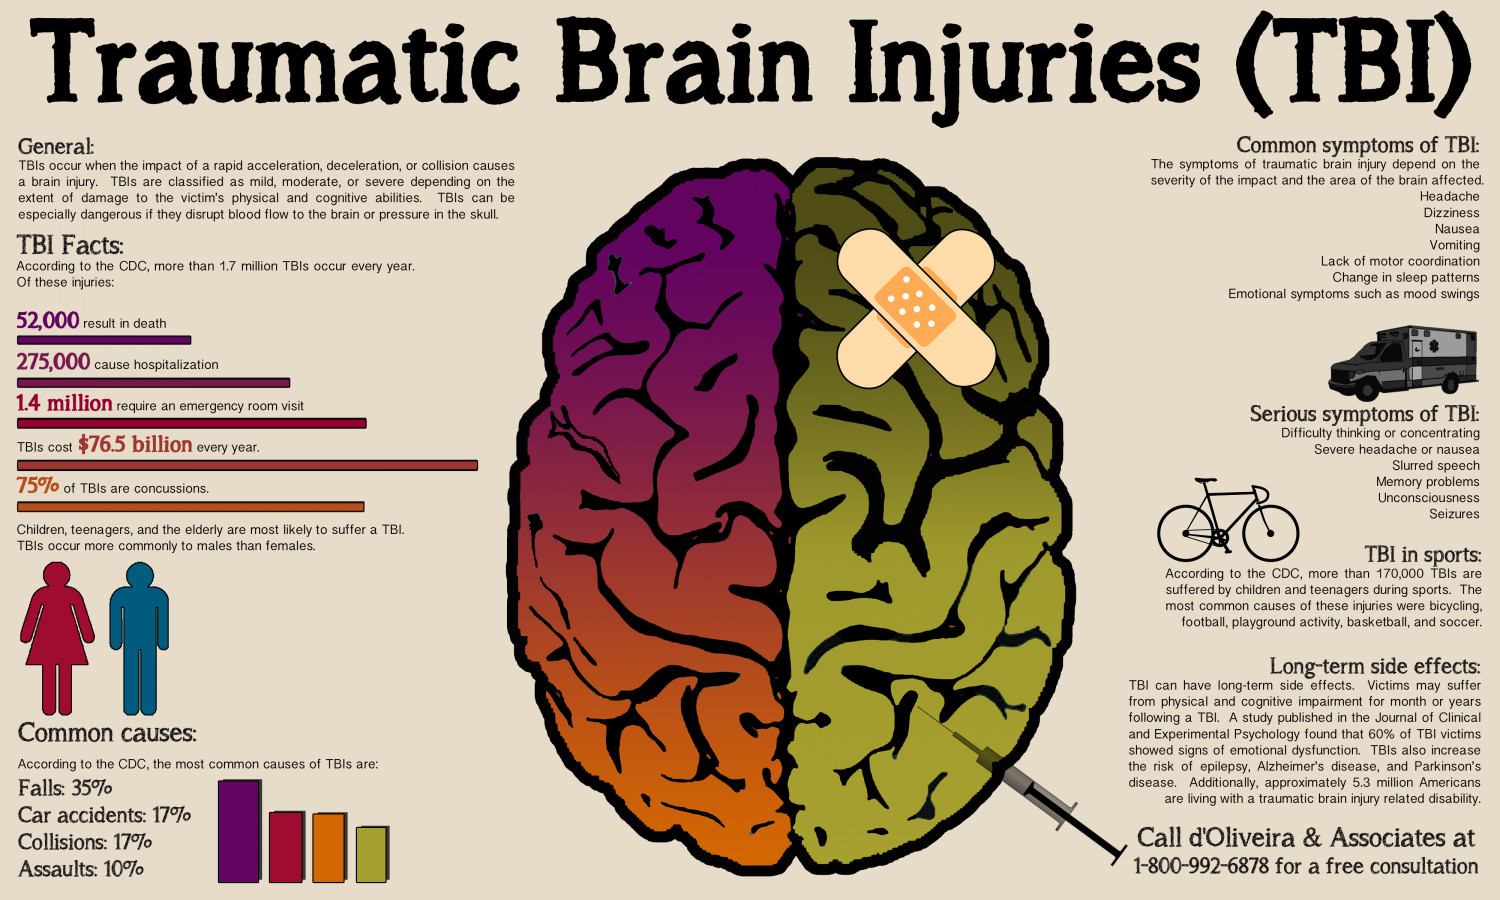 Traumatic Brain Injuries (TBI) Infographic